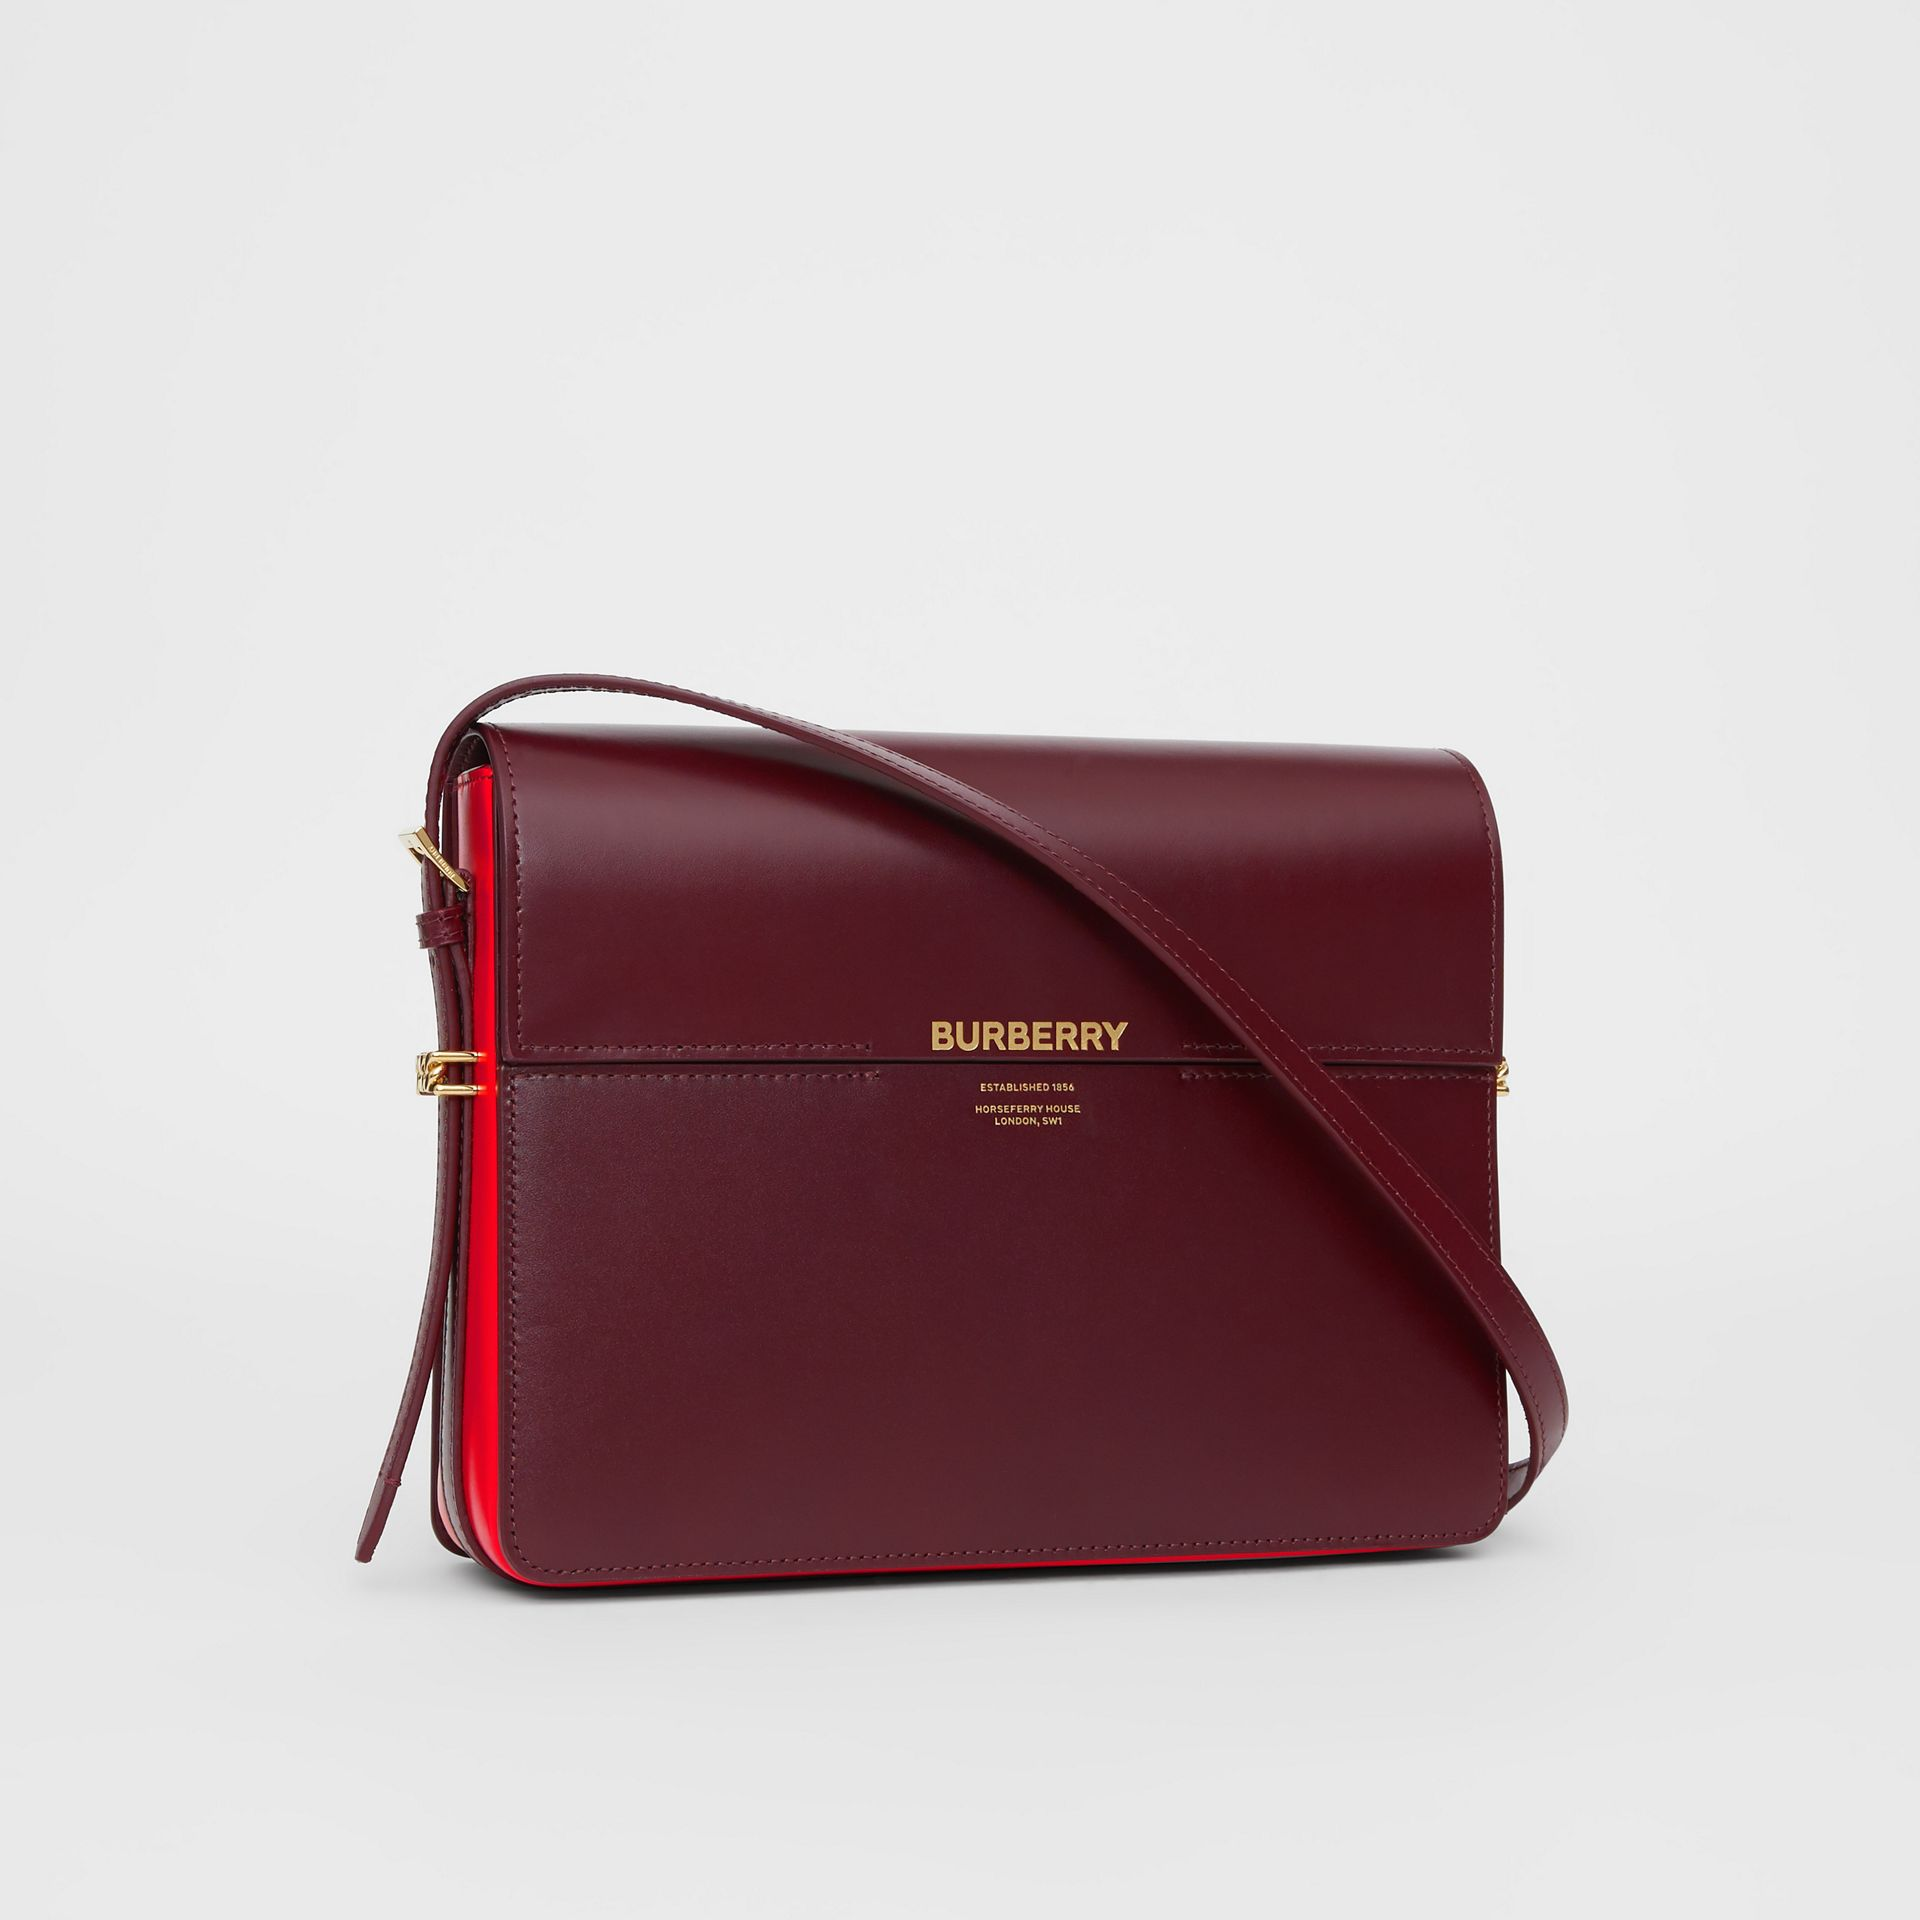 Grand sac Grace en cuir bicolore (Oxblood/rouge Militaire Vif) - Femme | Burberry - photo de la galerie 6